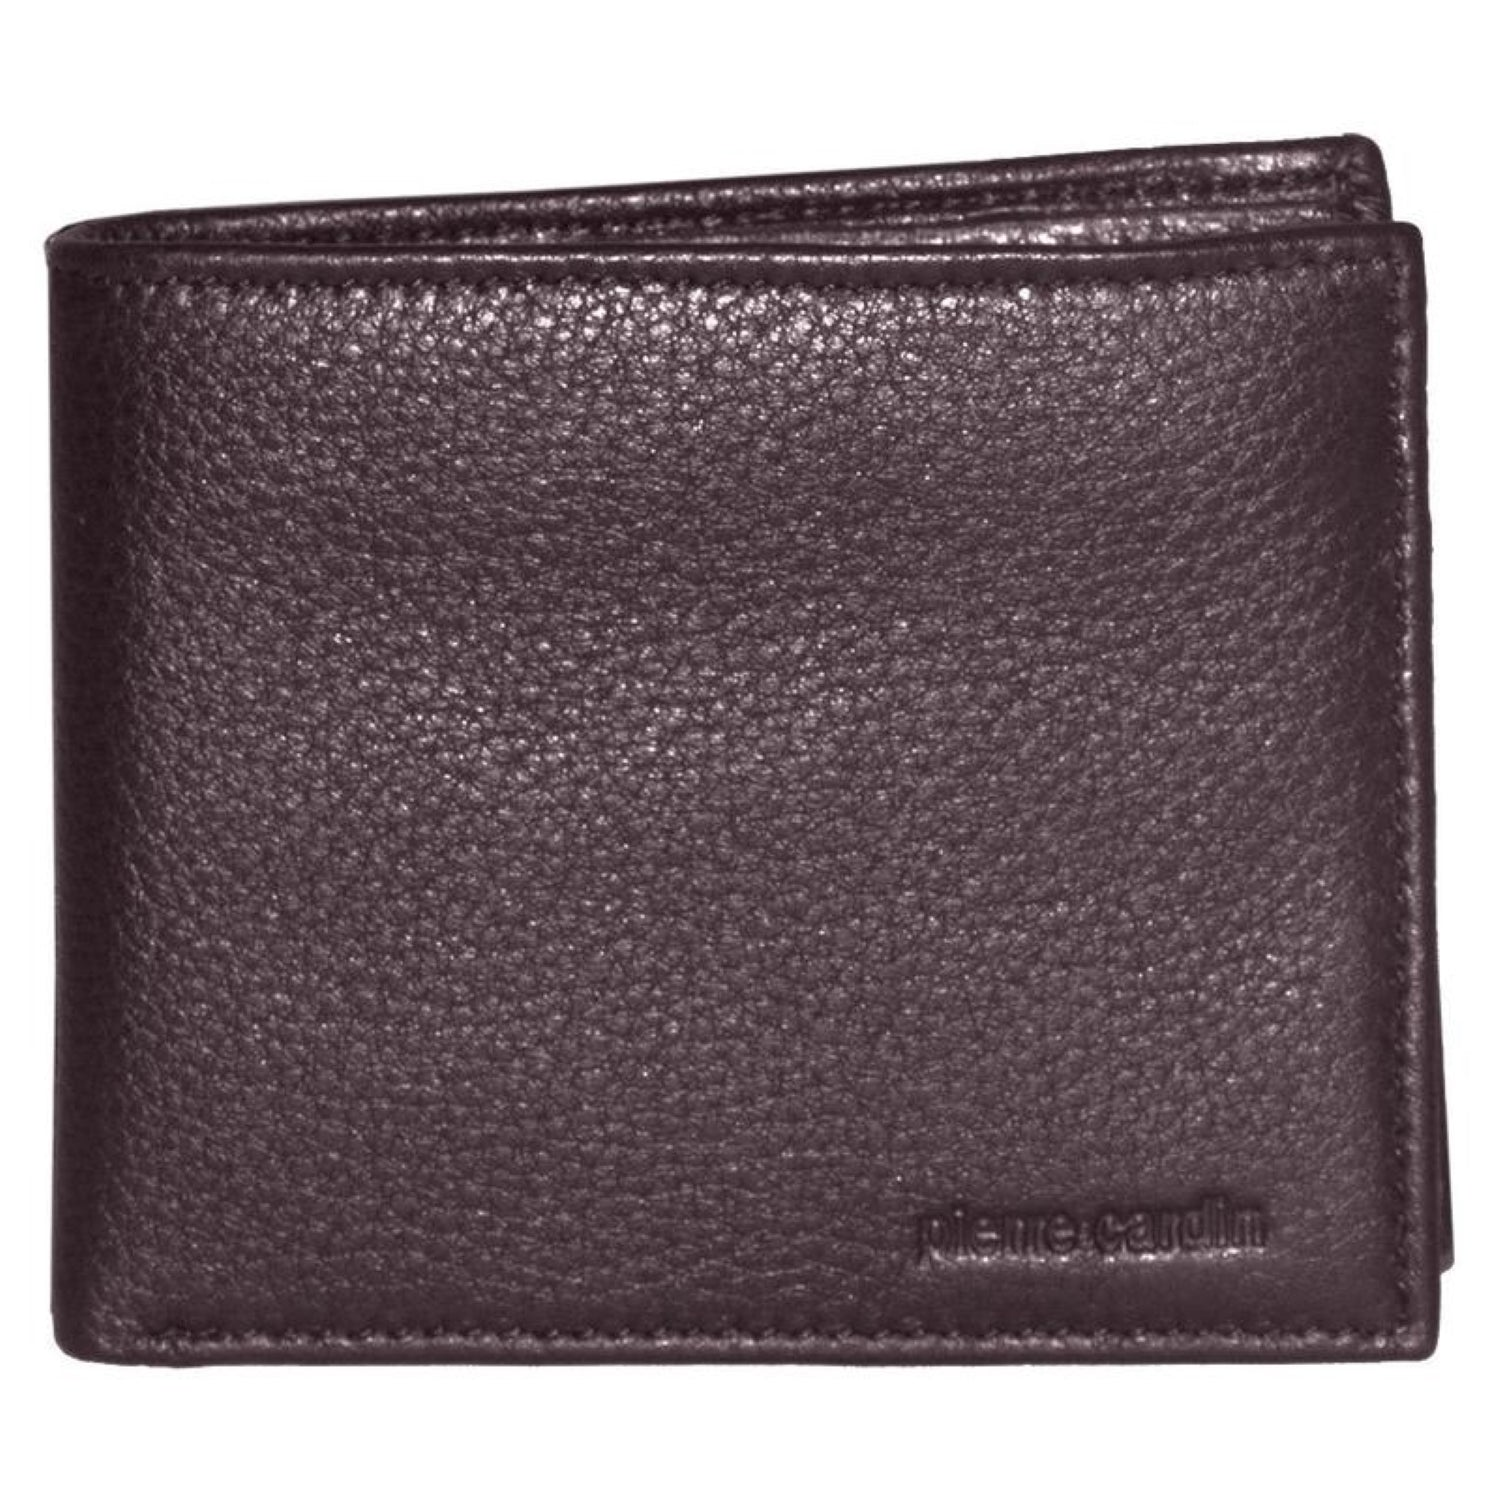 Pierre Cardin PC1162 BROWN MENS WALLET - RFID Italian Leather